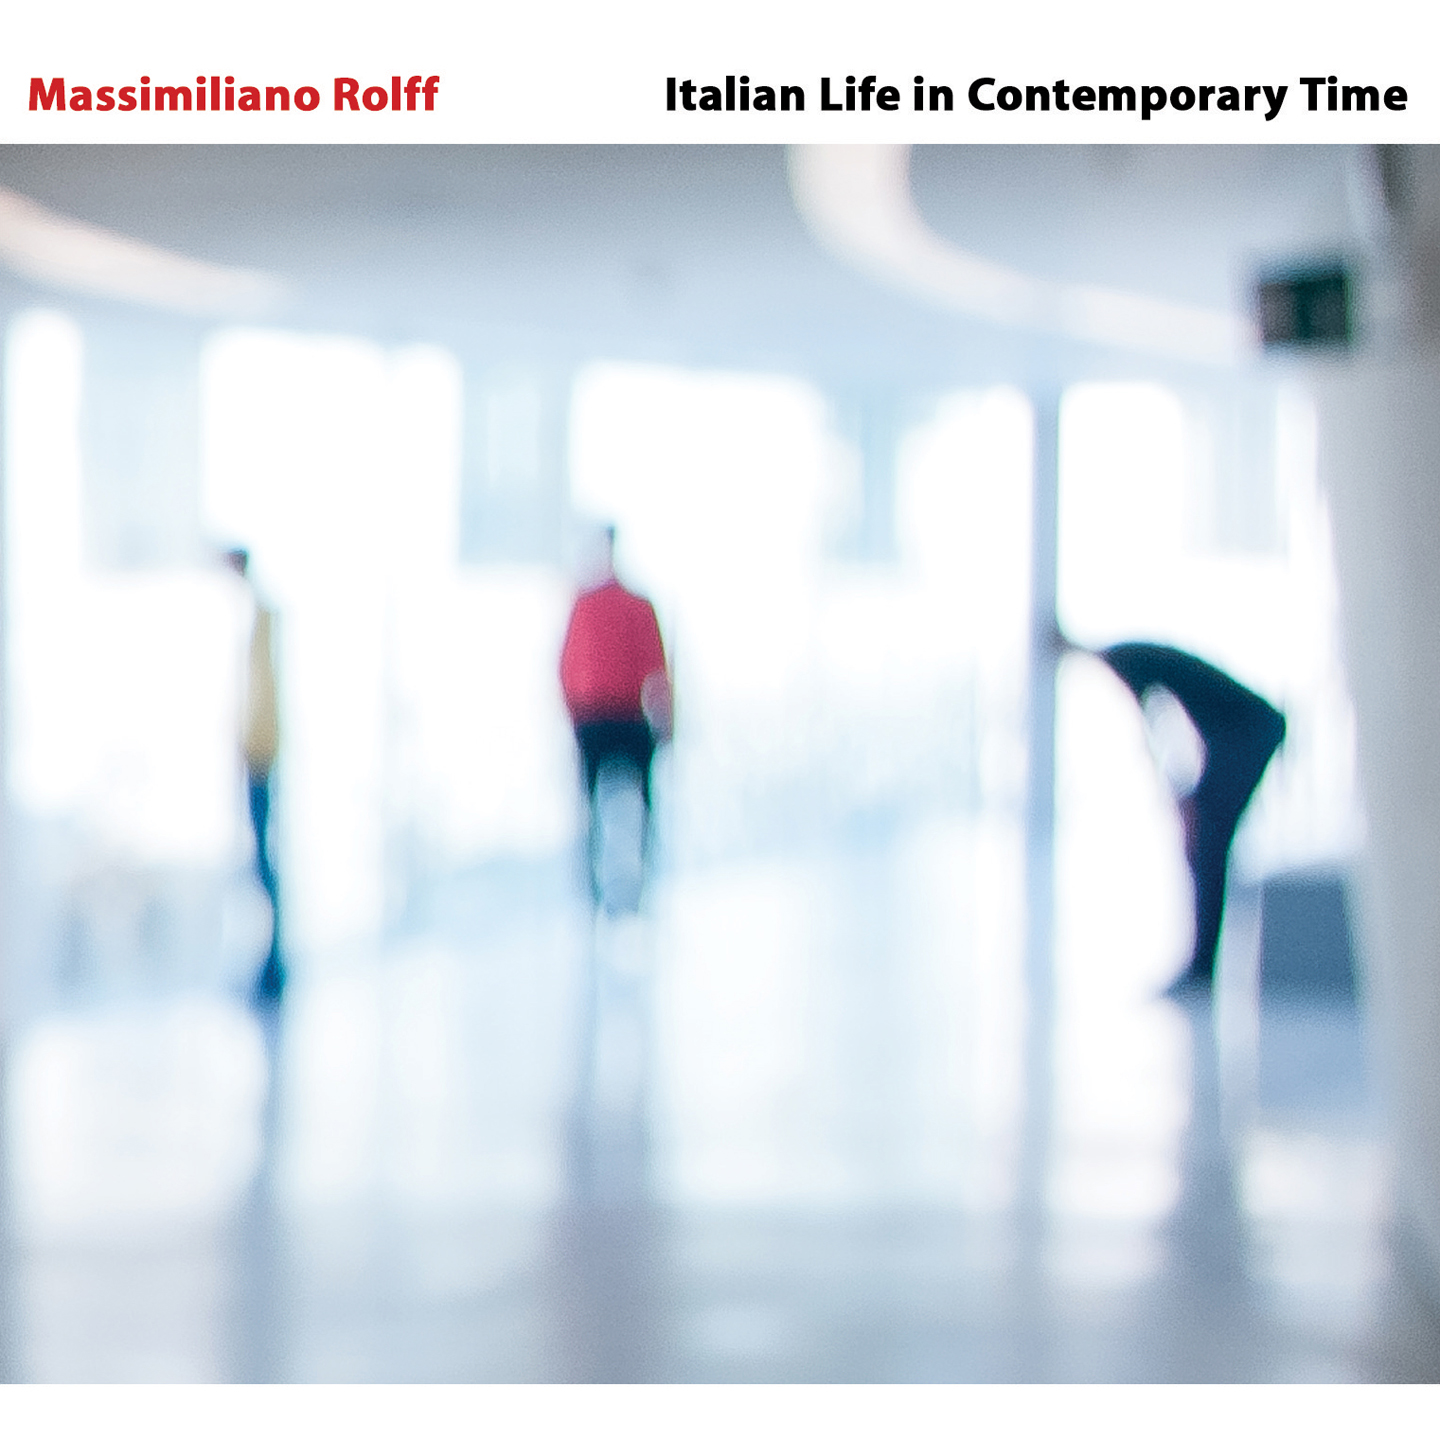 Italian Life in Contemporary Time